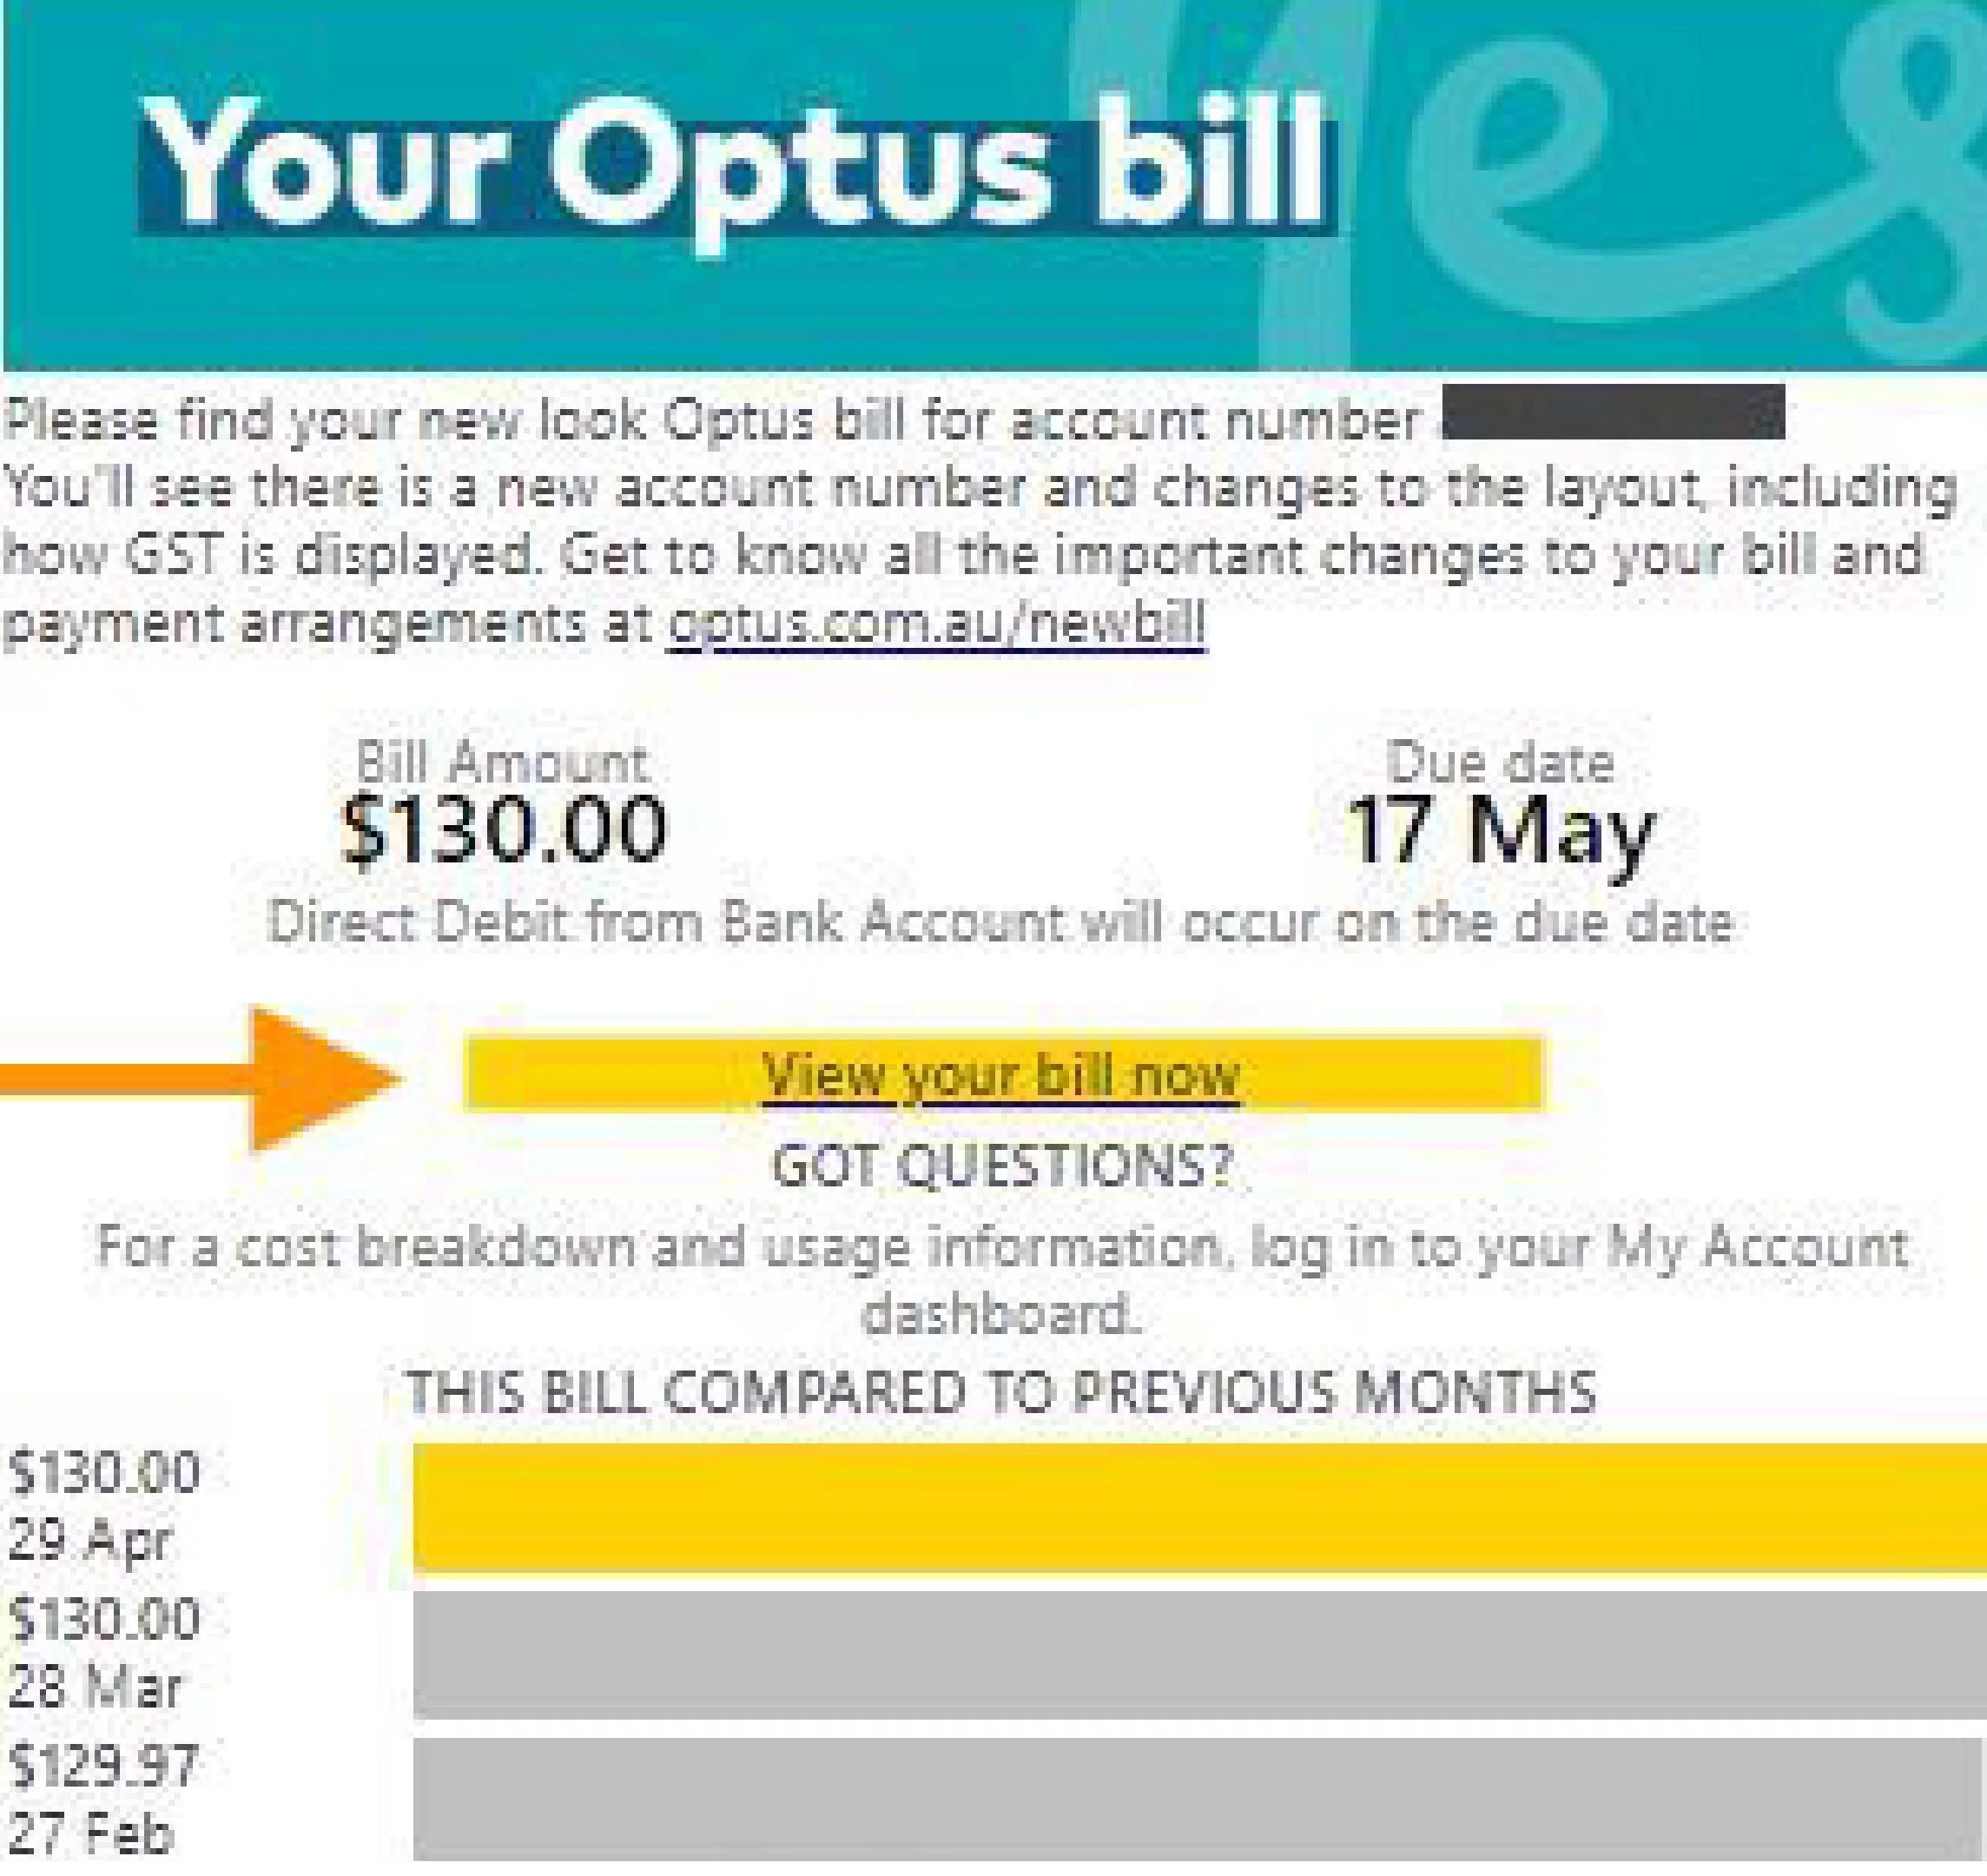 Optus email scam: Arrives in the guise of bill notifications